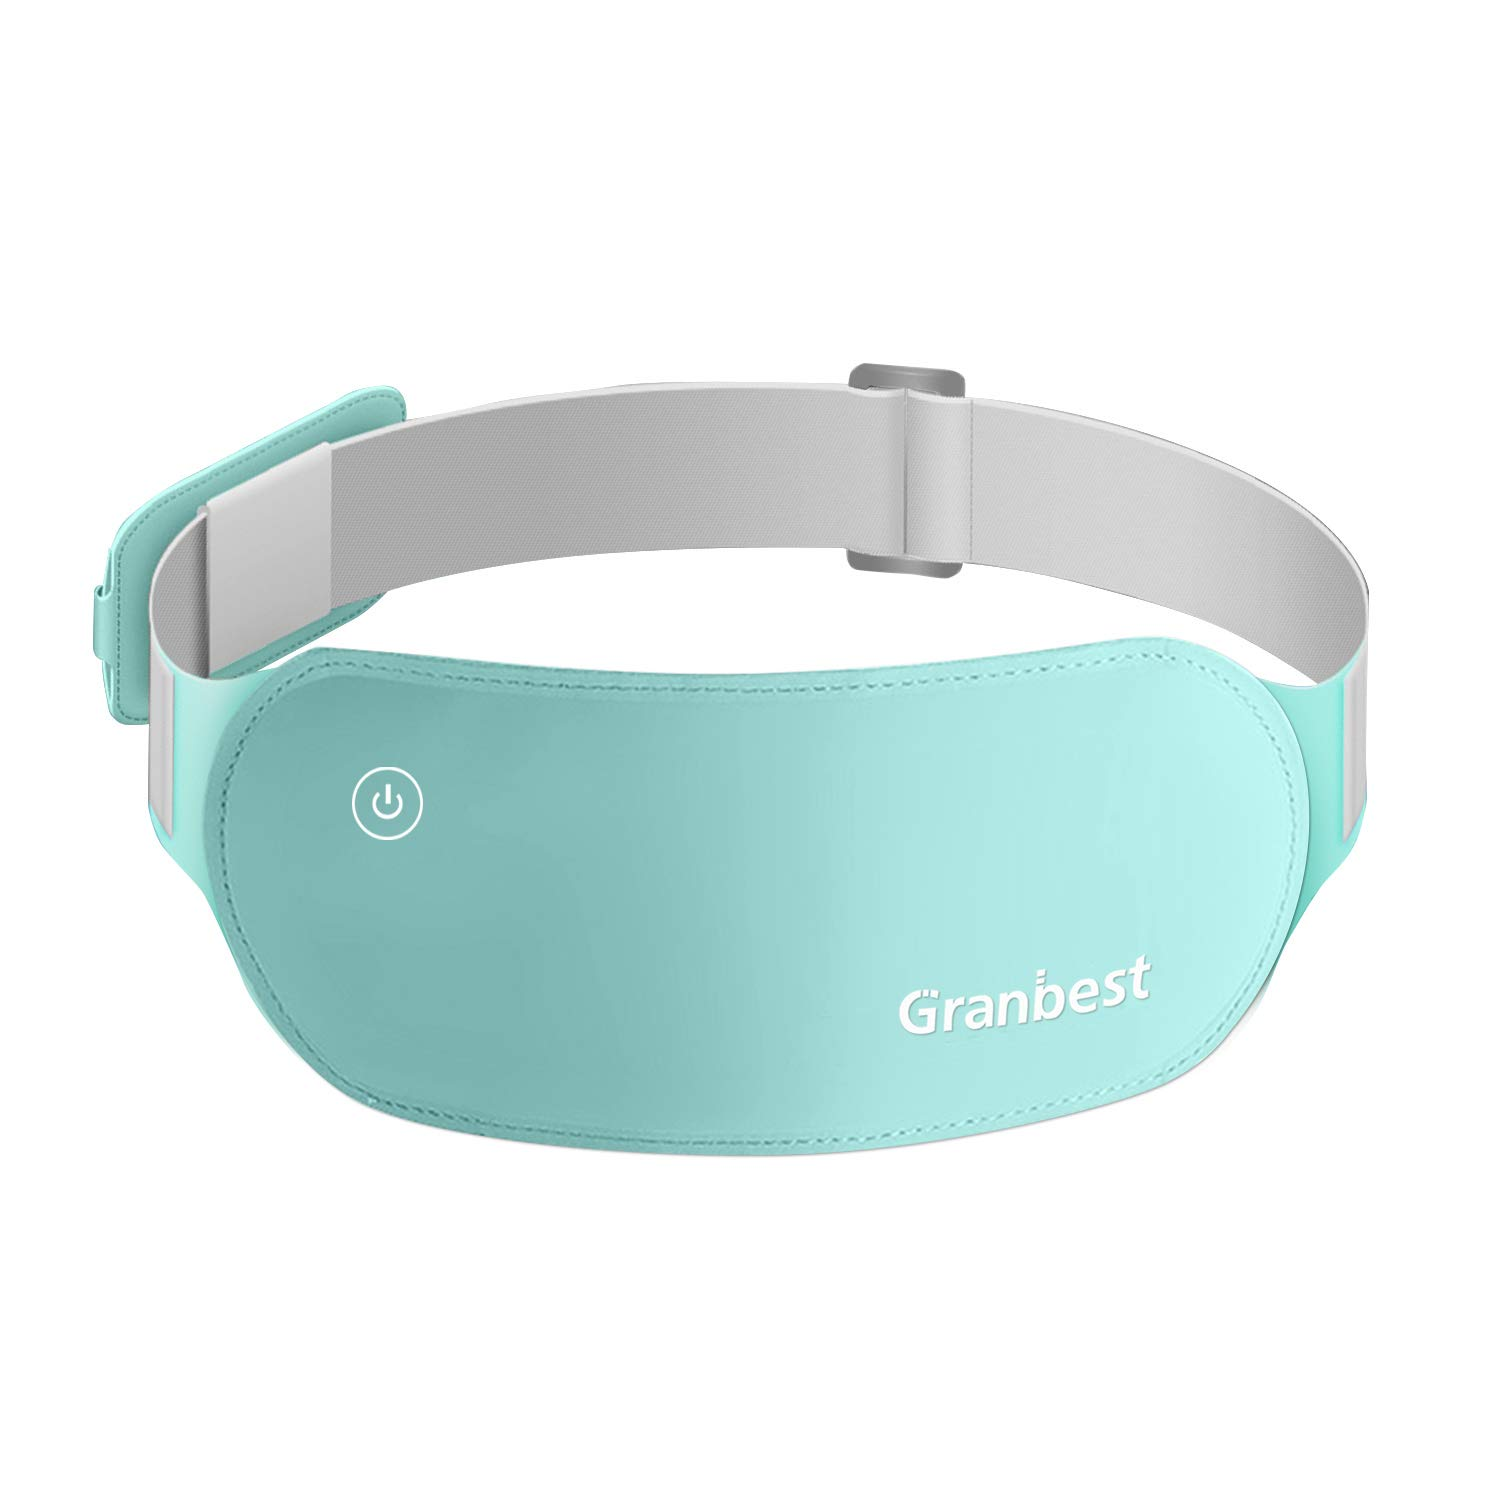 Granbest Portable Electric Heating Pad for Cramps, Lower Back Pain Relief USB Infrared Warming Waist Belt (Light Green) by Granbest